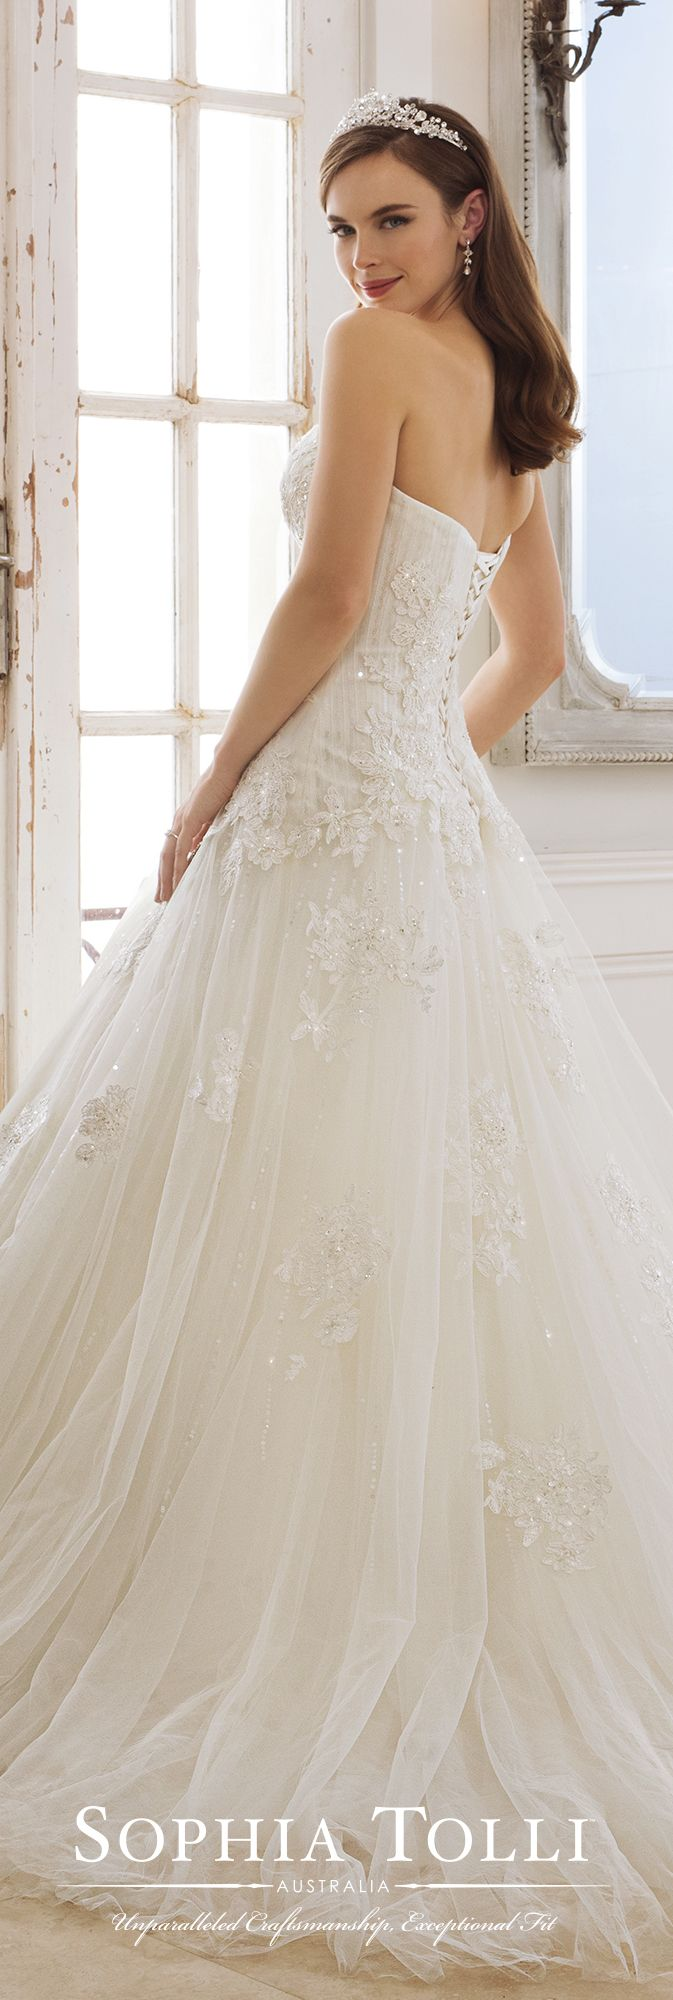 592 best Wedding Dresses by Sophia Tolli images on Pinterest ...